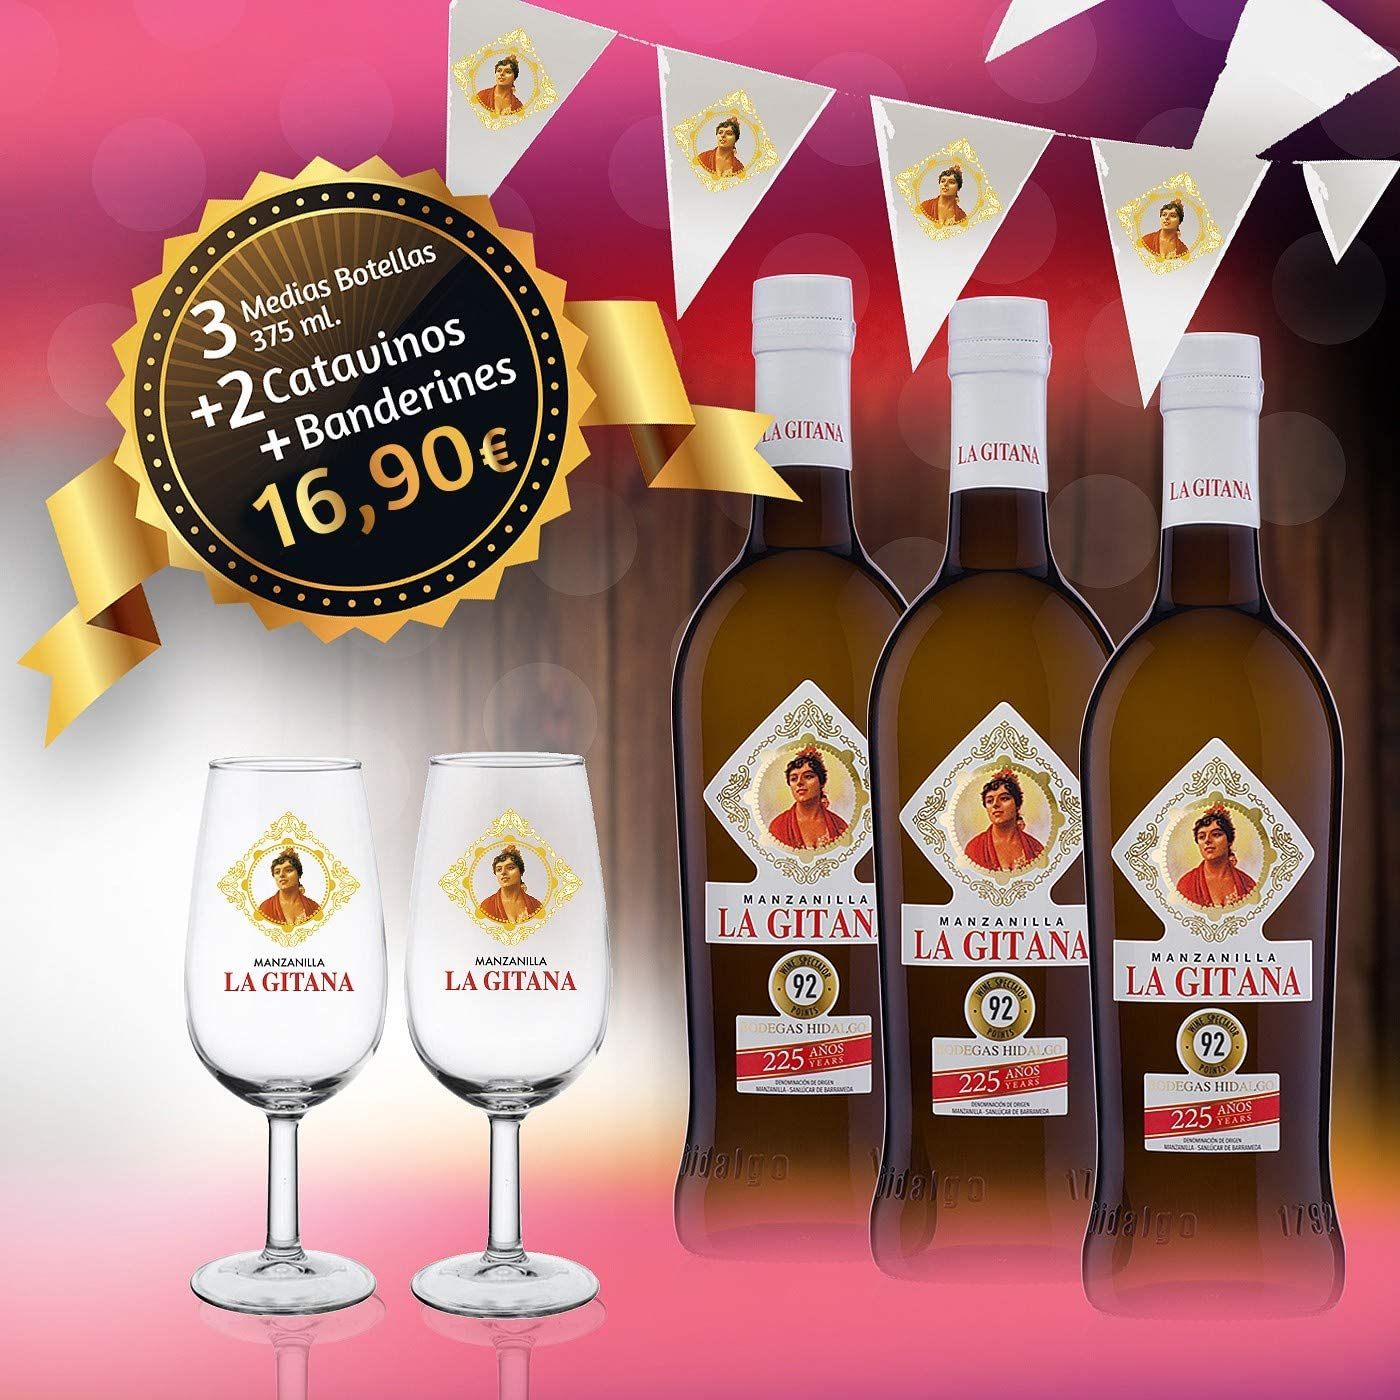 Manzanilla La Gitana - Pack 3 Botellas 37,5 Cl. + 2 Catavinos + Banderines